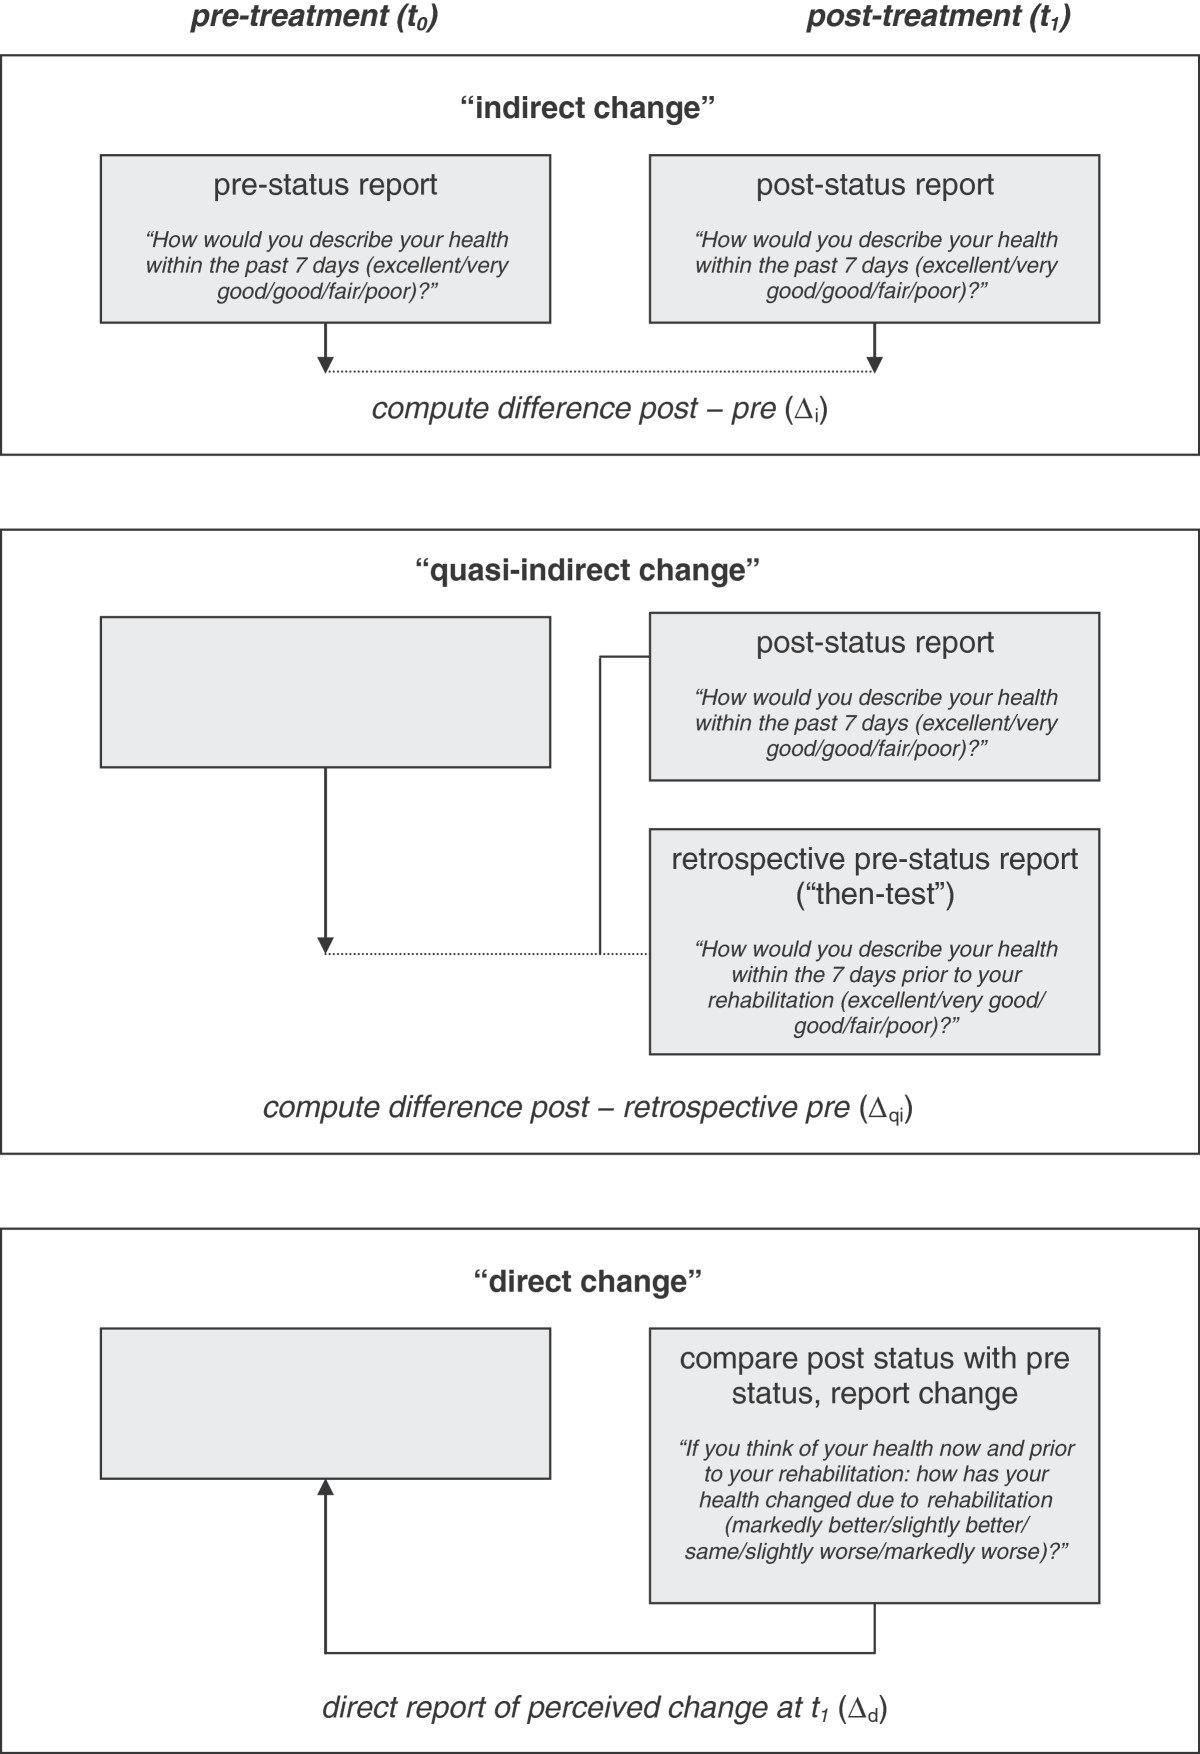 https://static-content.springer.com/image/art%3A10.1186%2F1471-2288-13-52/MediaObjects/12874_2011_Article_922_Fig1_HTML.jpg